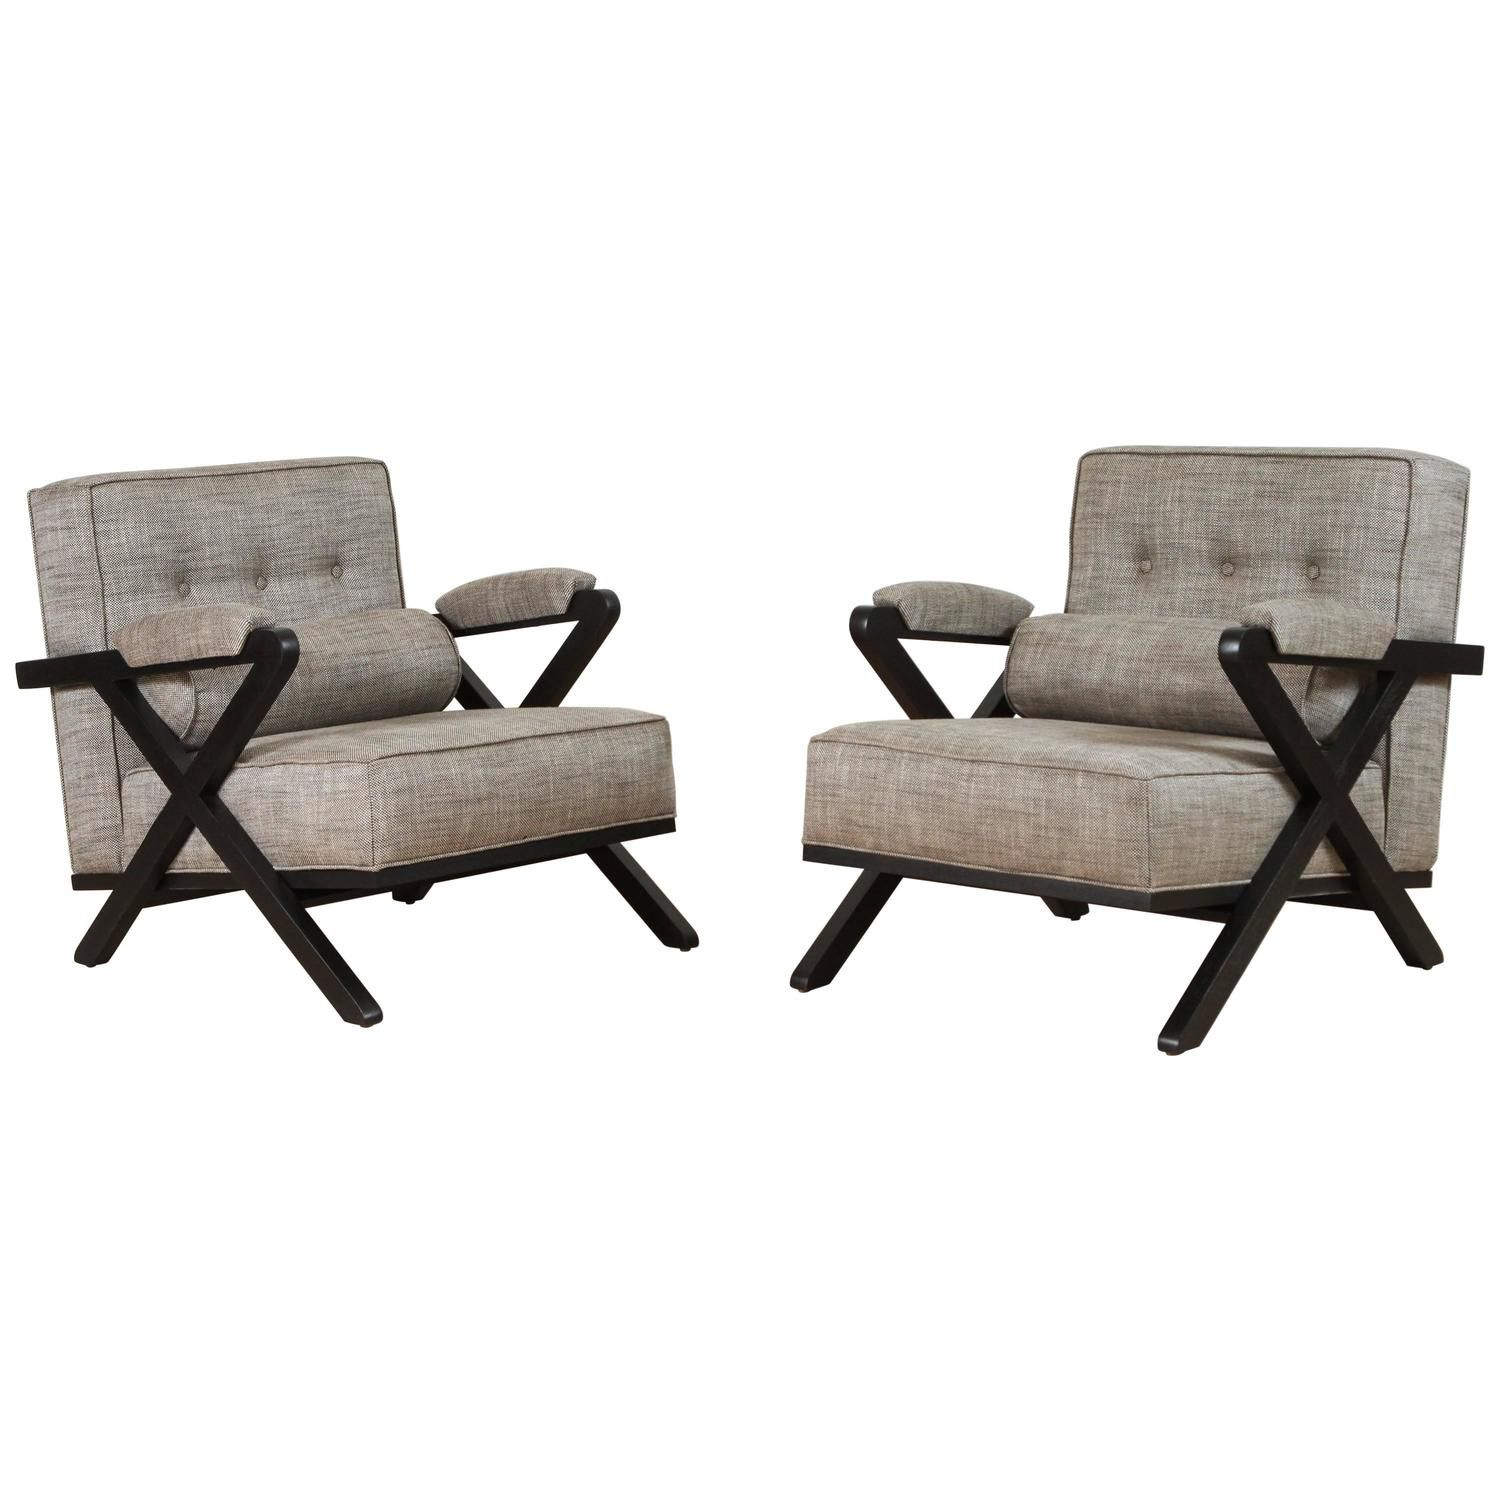 Pair of dillon chairs in ebonized oak by lawsonfenning my stdibs